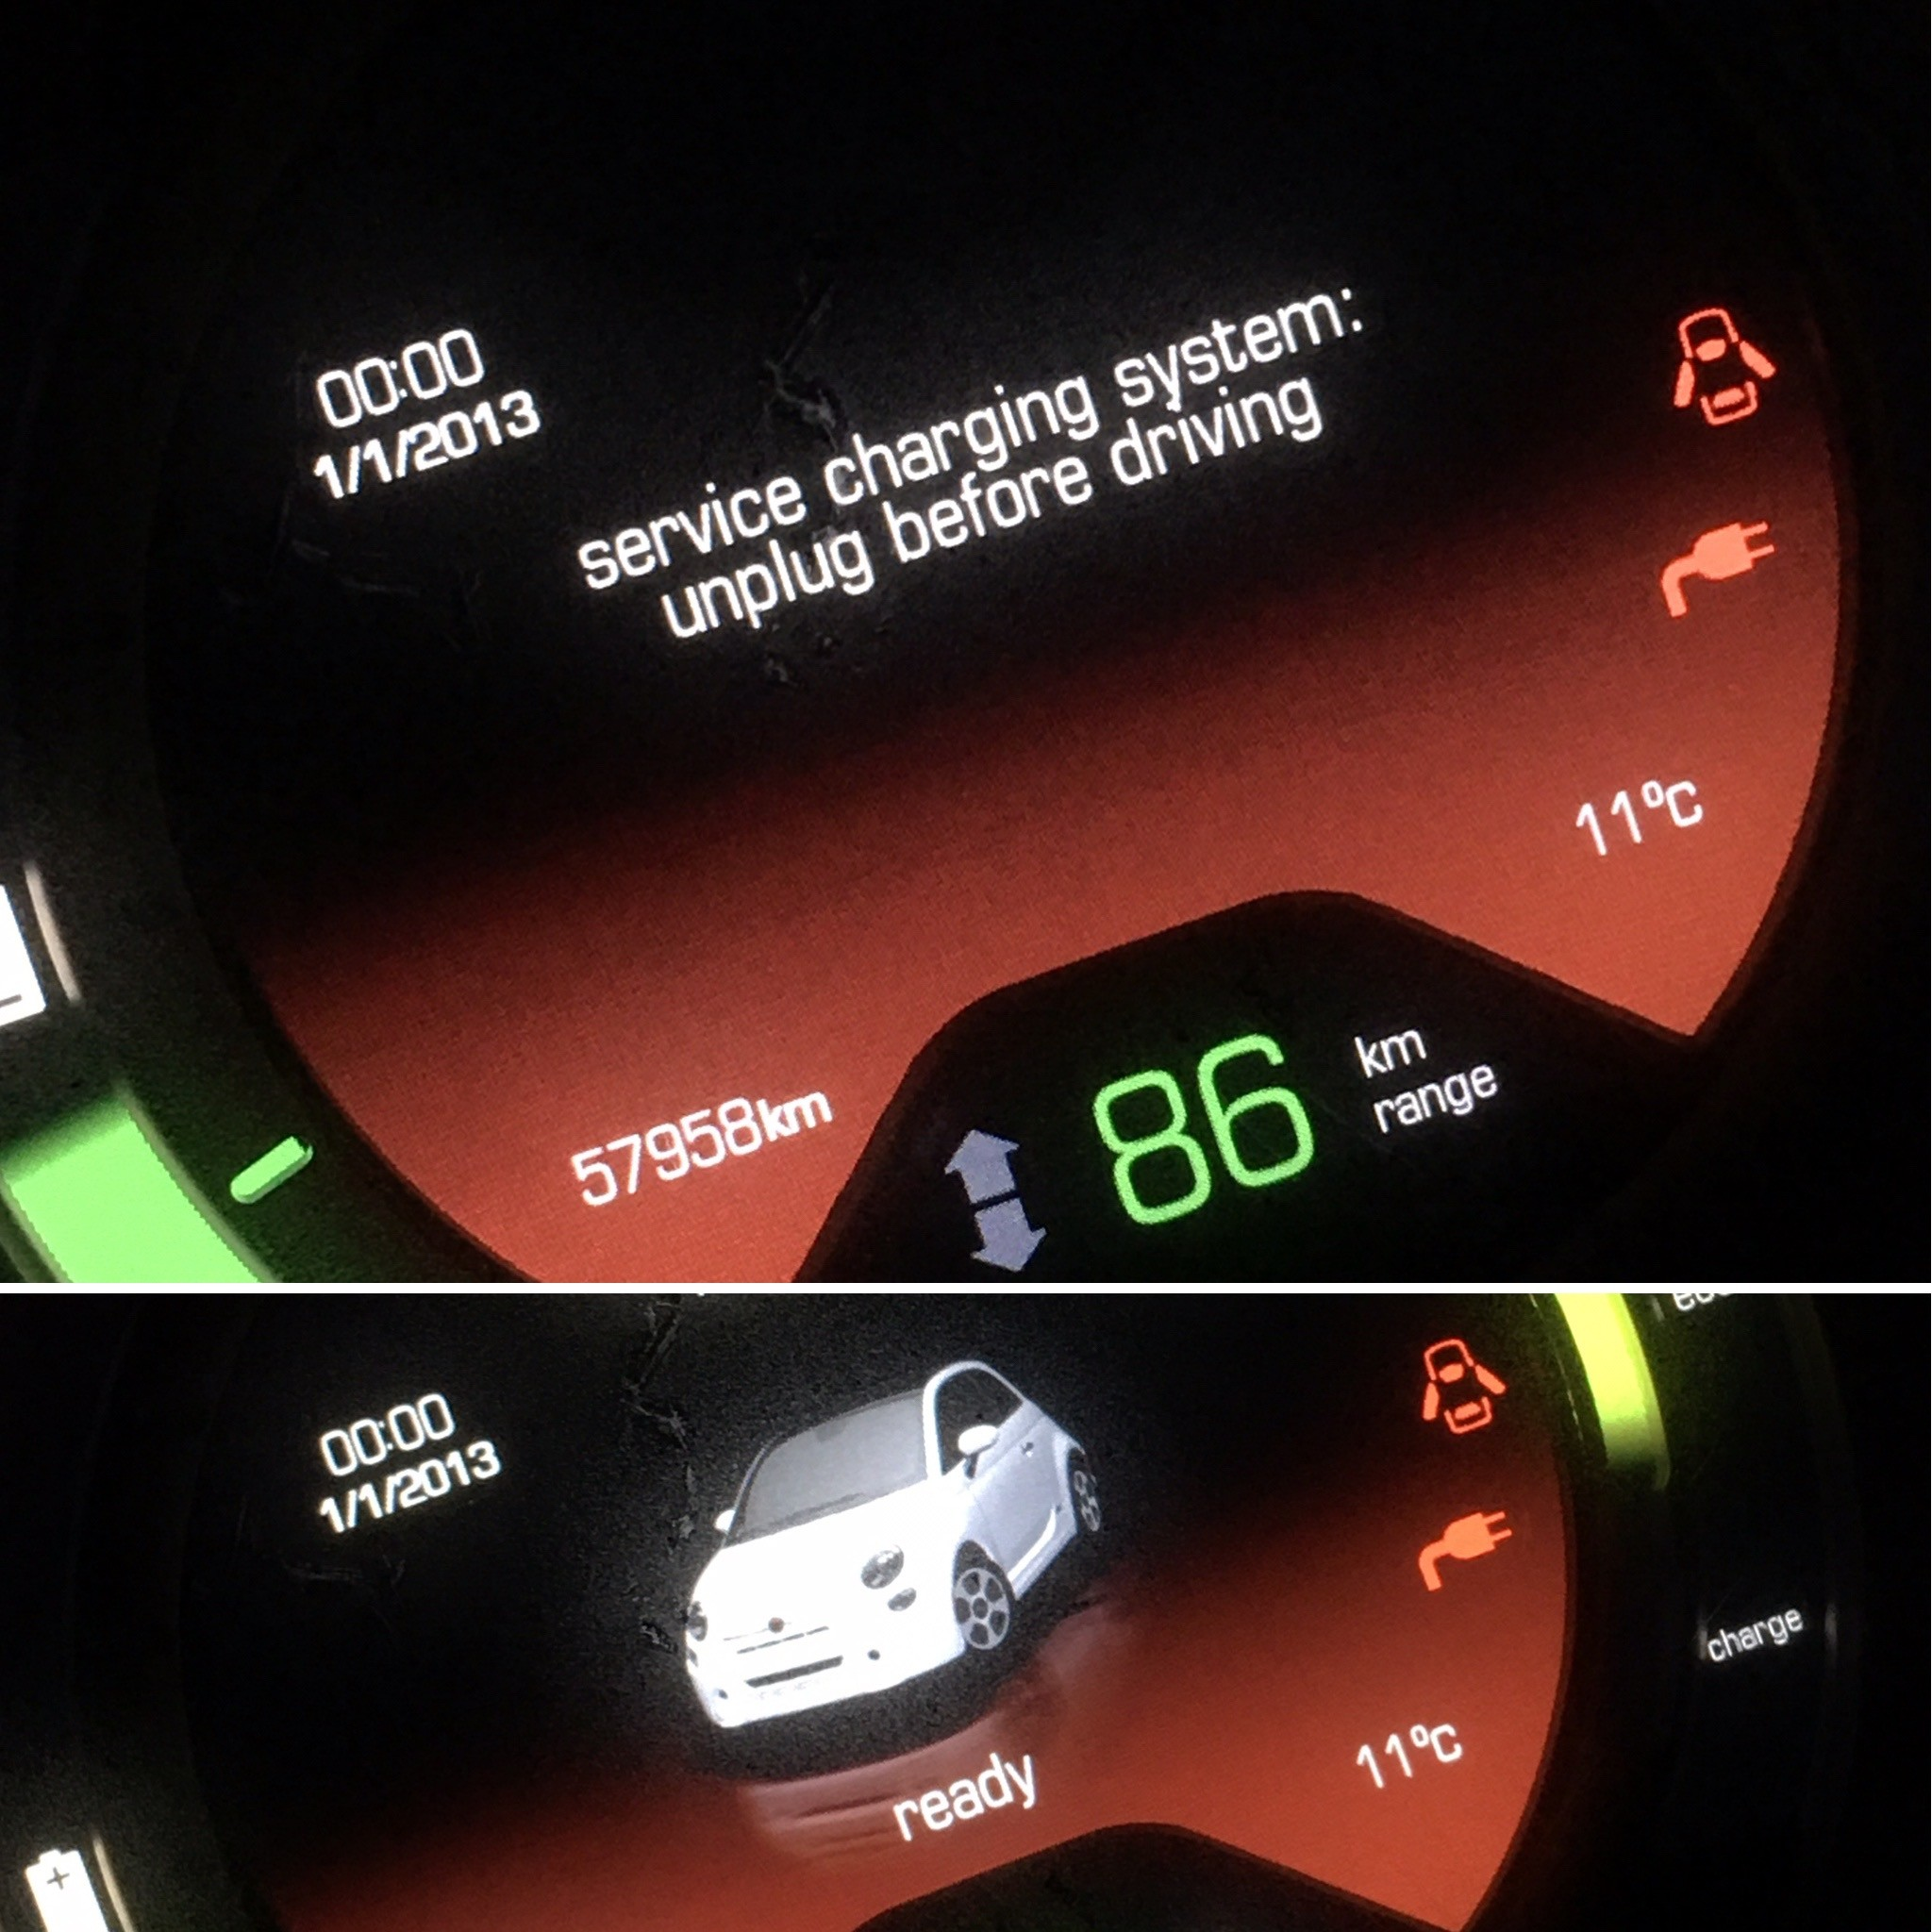 Service Charging System